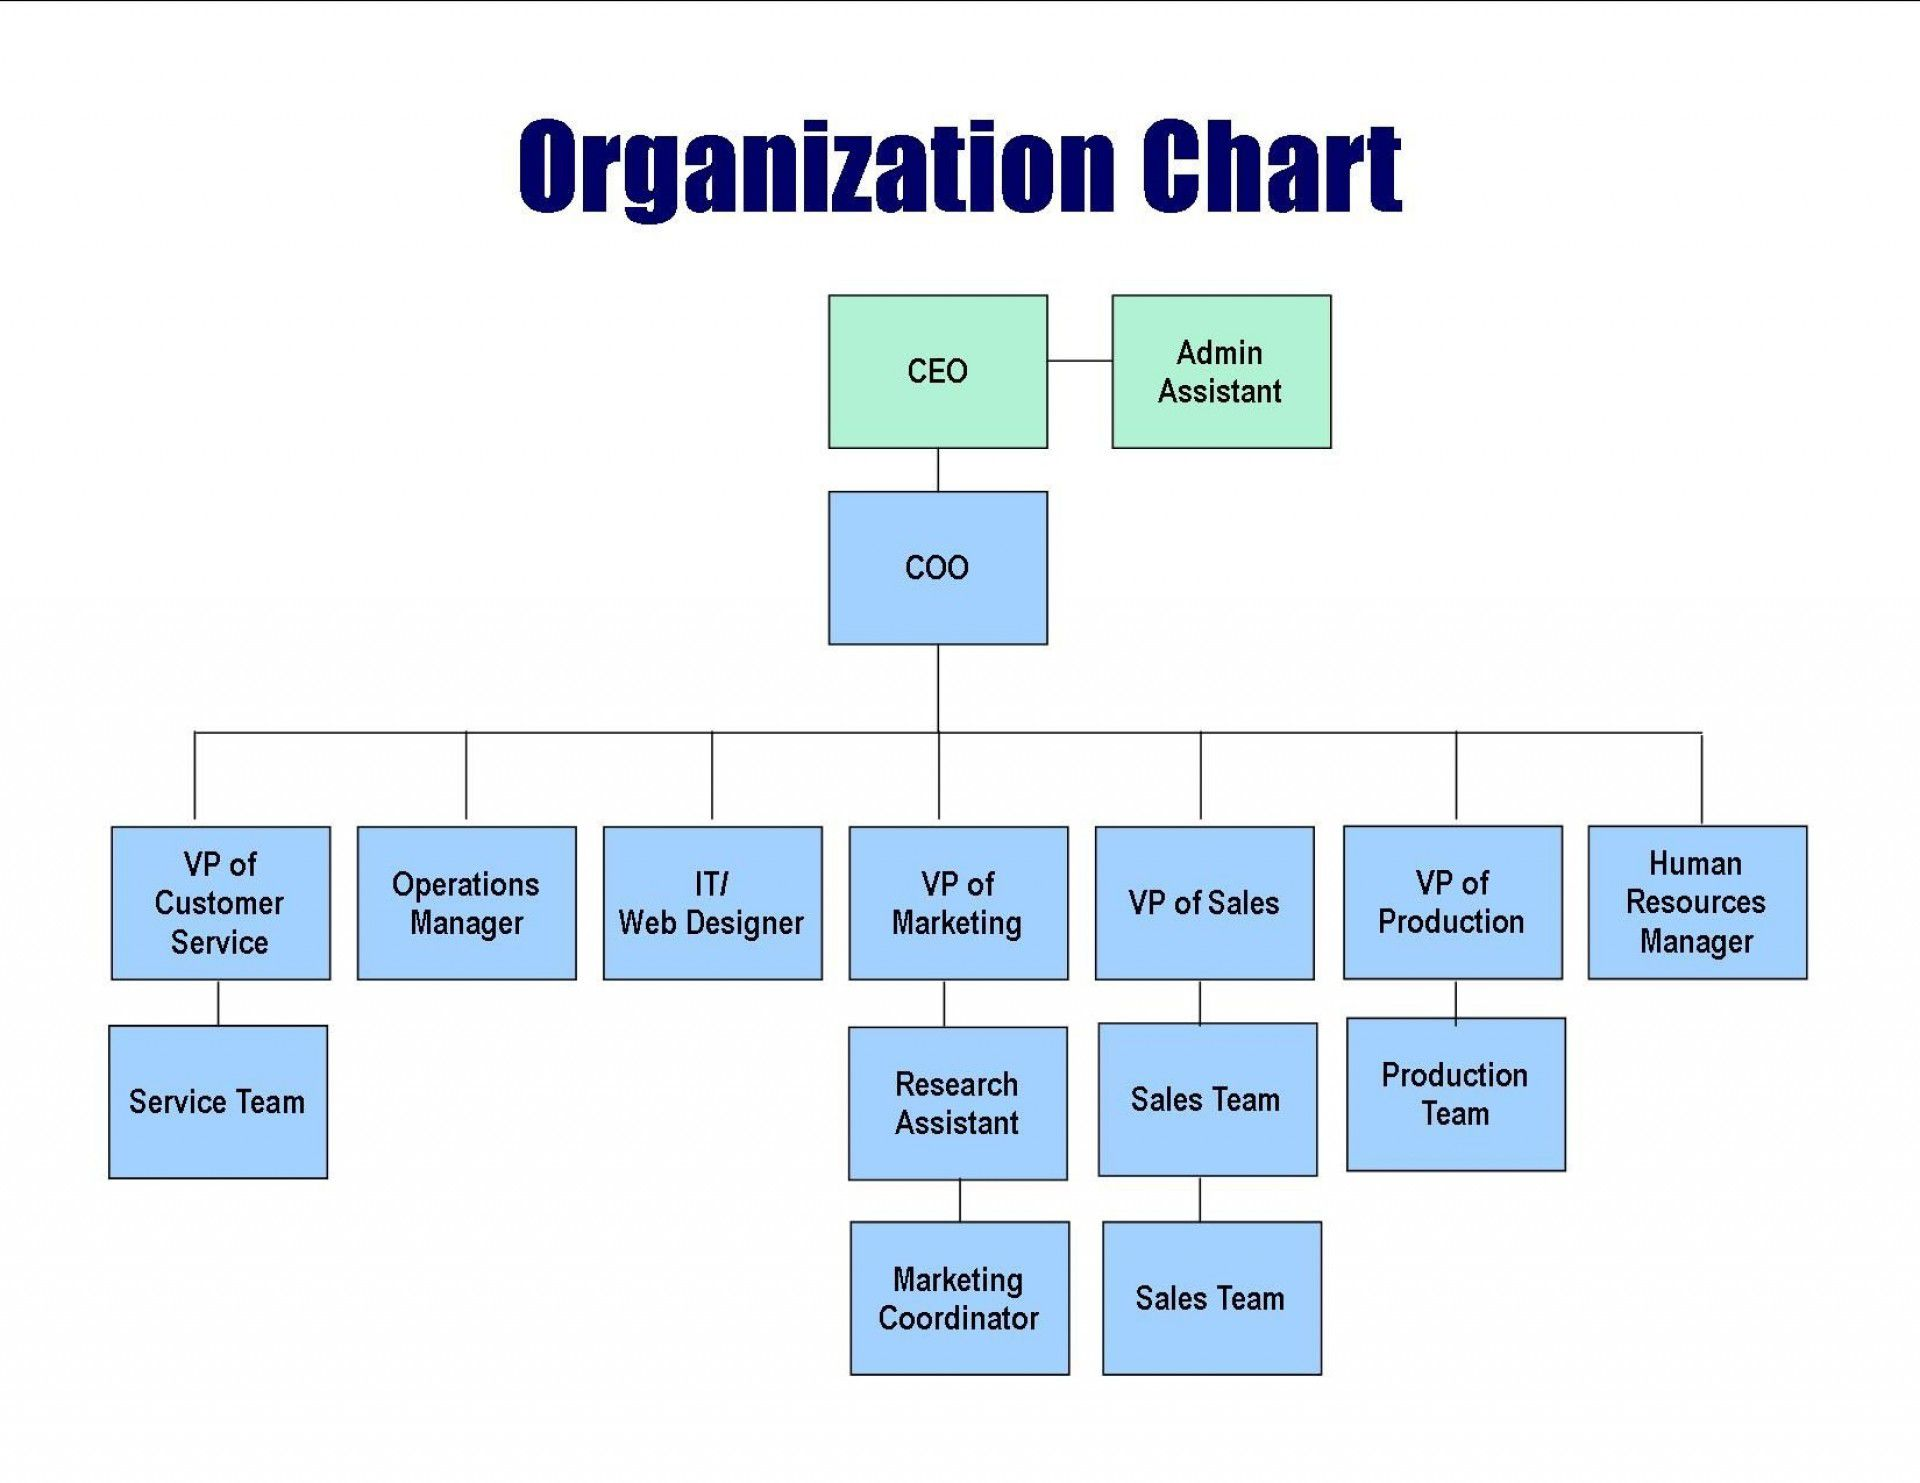 004 Rare Organizational Chart Template Word Concept  2010 2007 Free Download